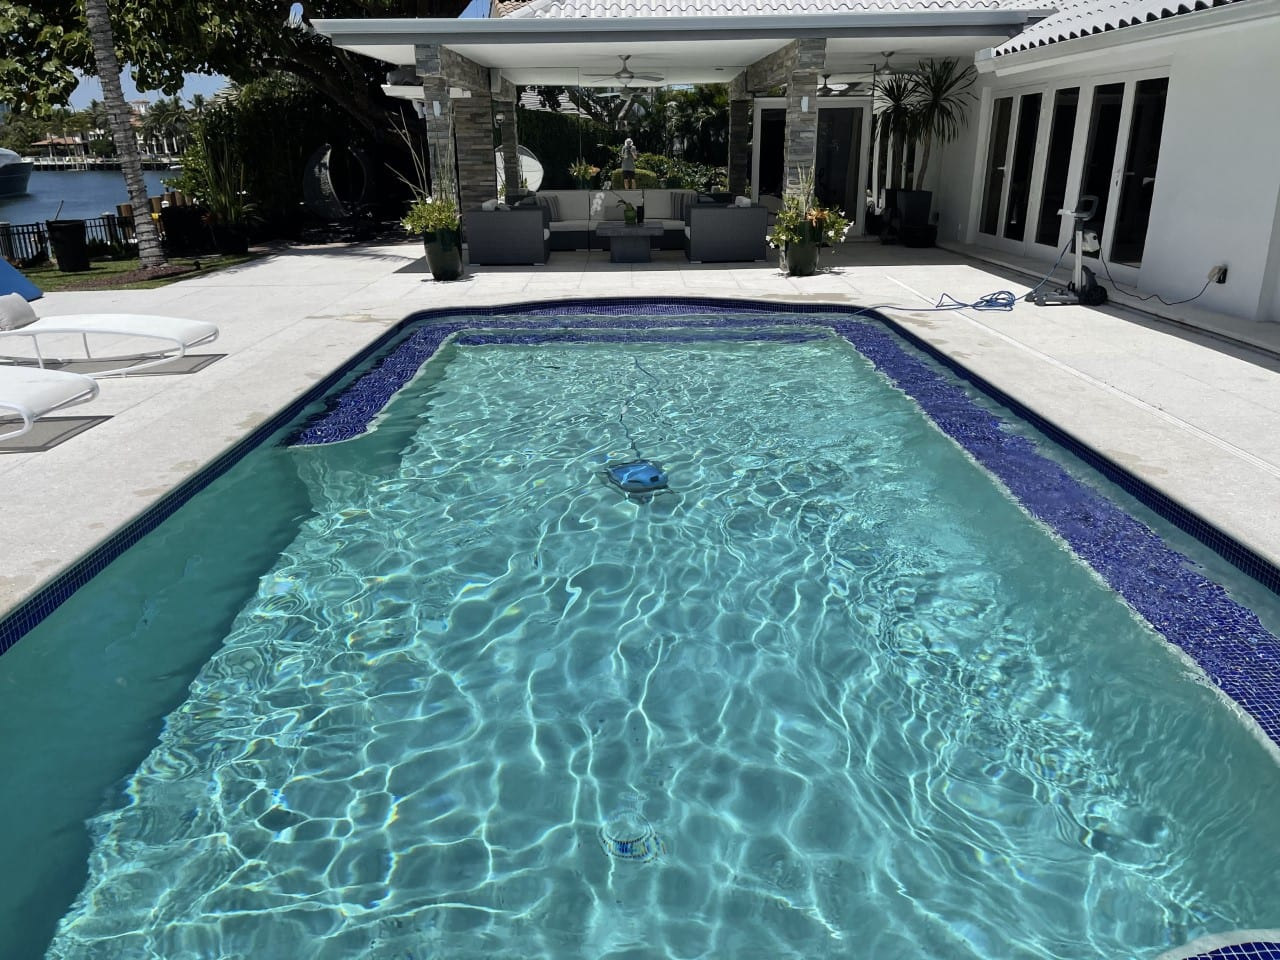 Rectangular pool with a white patio in front and white pool chairs on one side